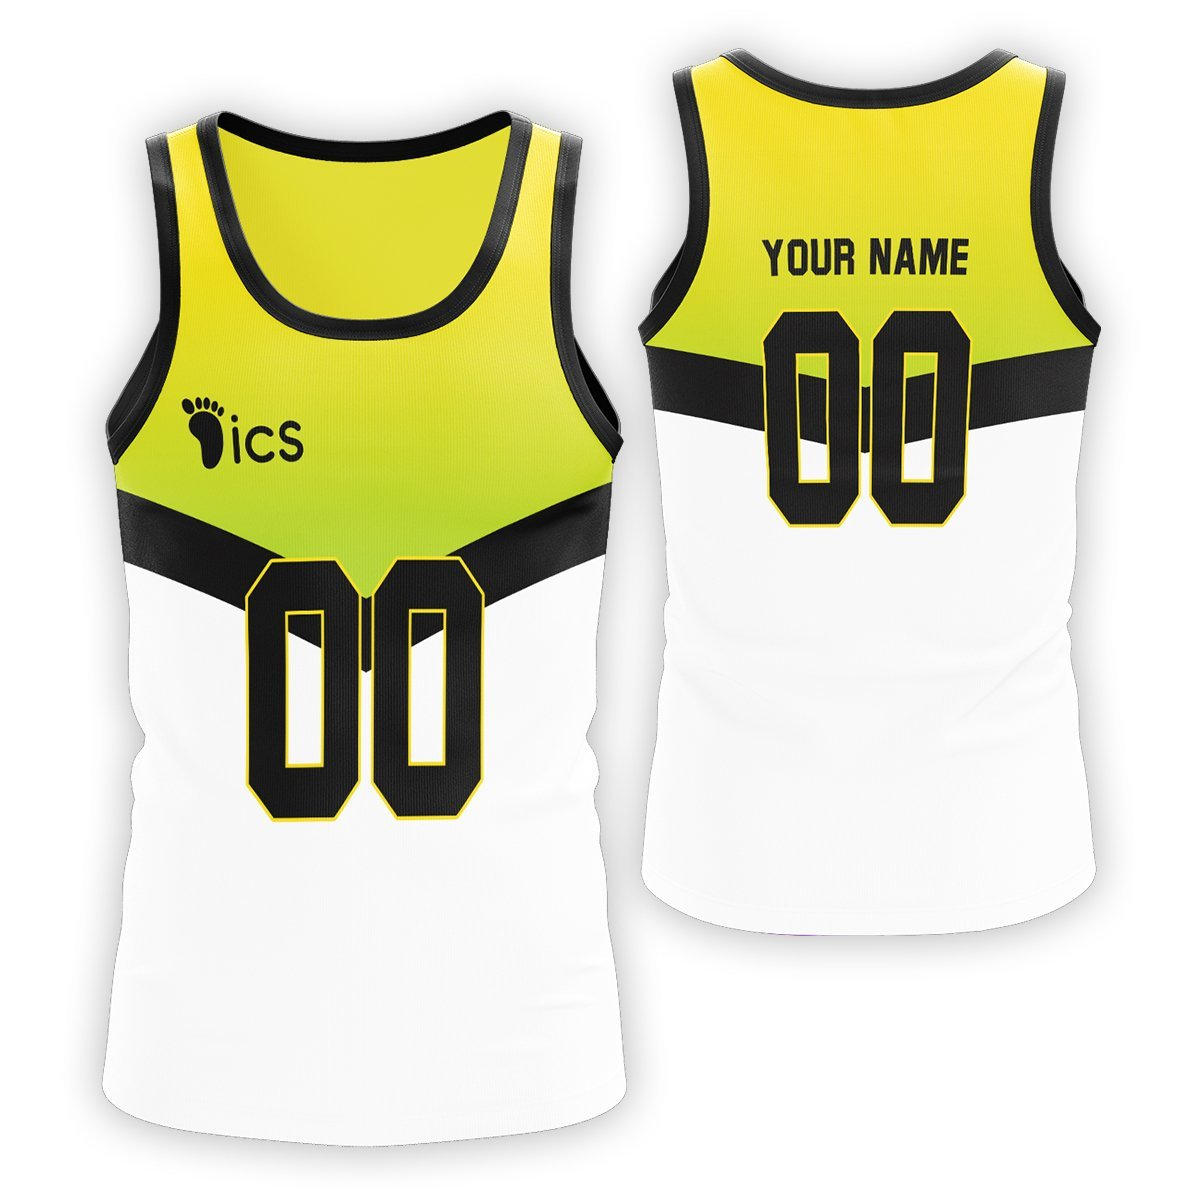 Personalized Team Itachiyama Unisex Tank Tops FDM3107 S Official Anime Swimsuit Merch